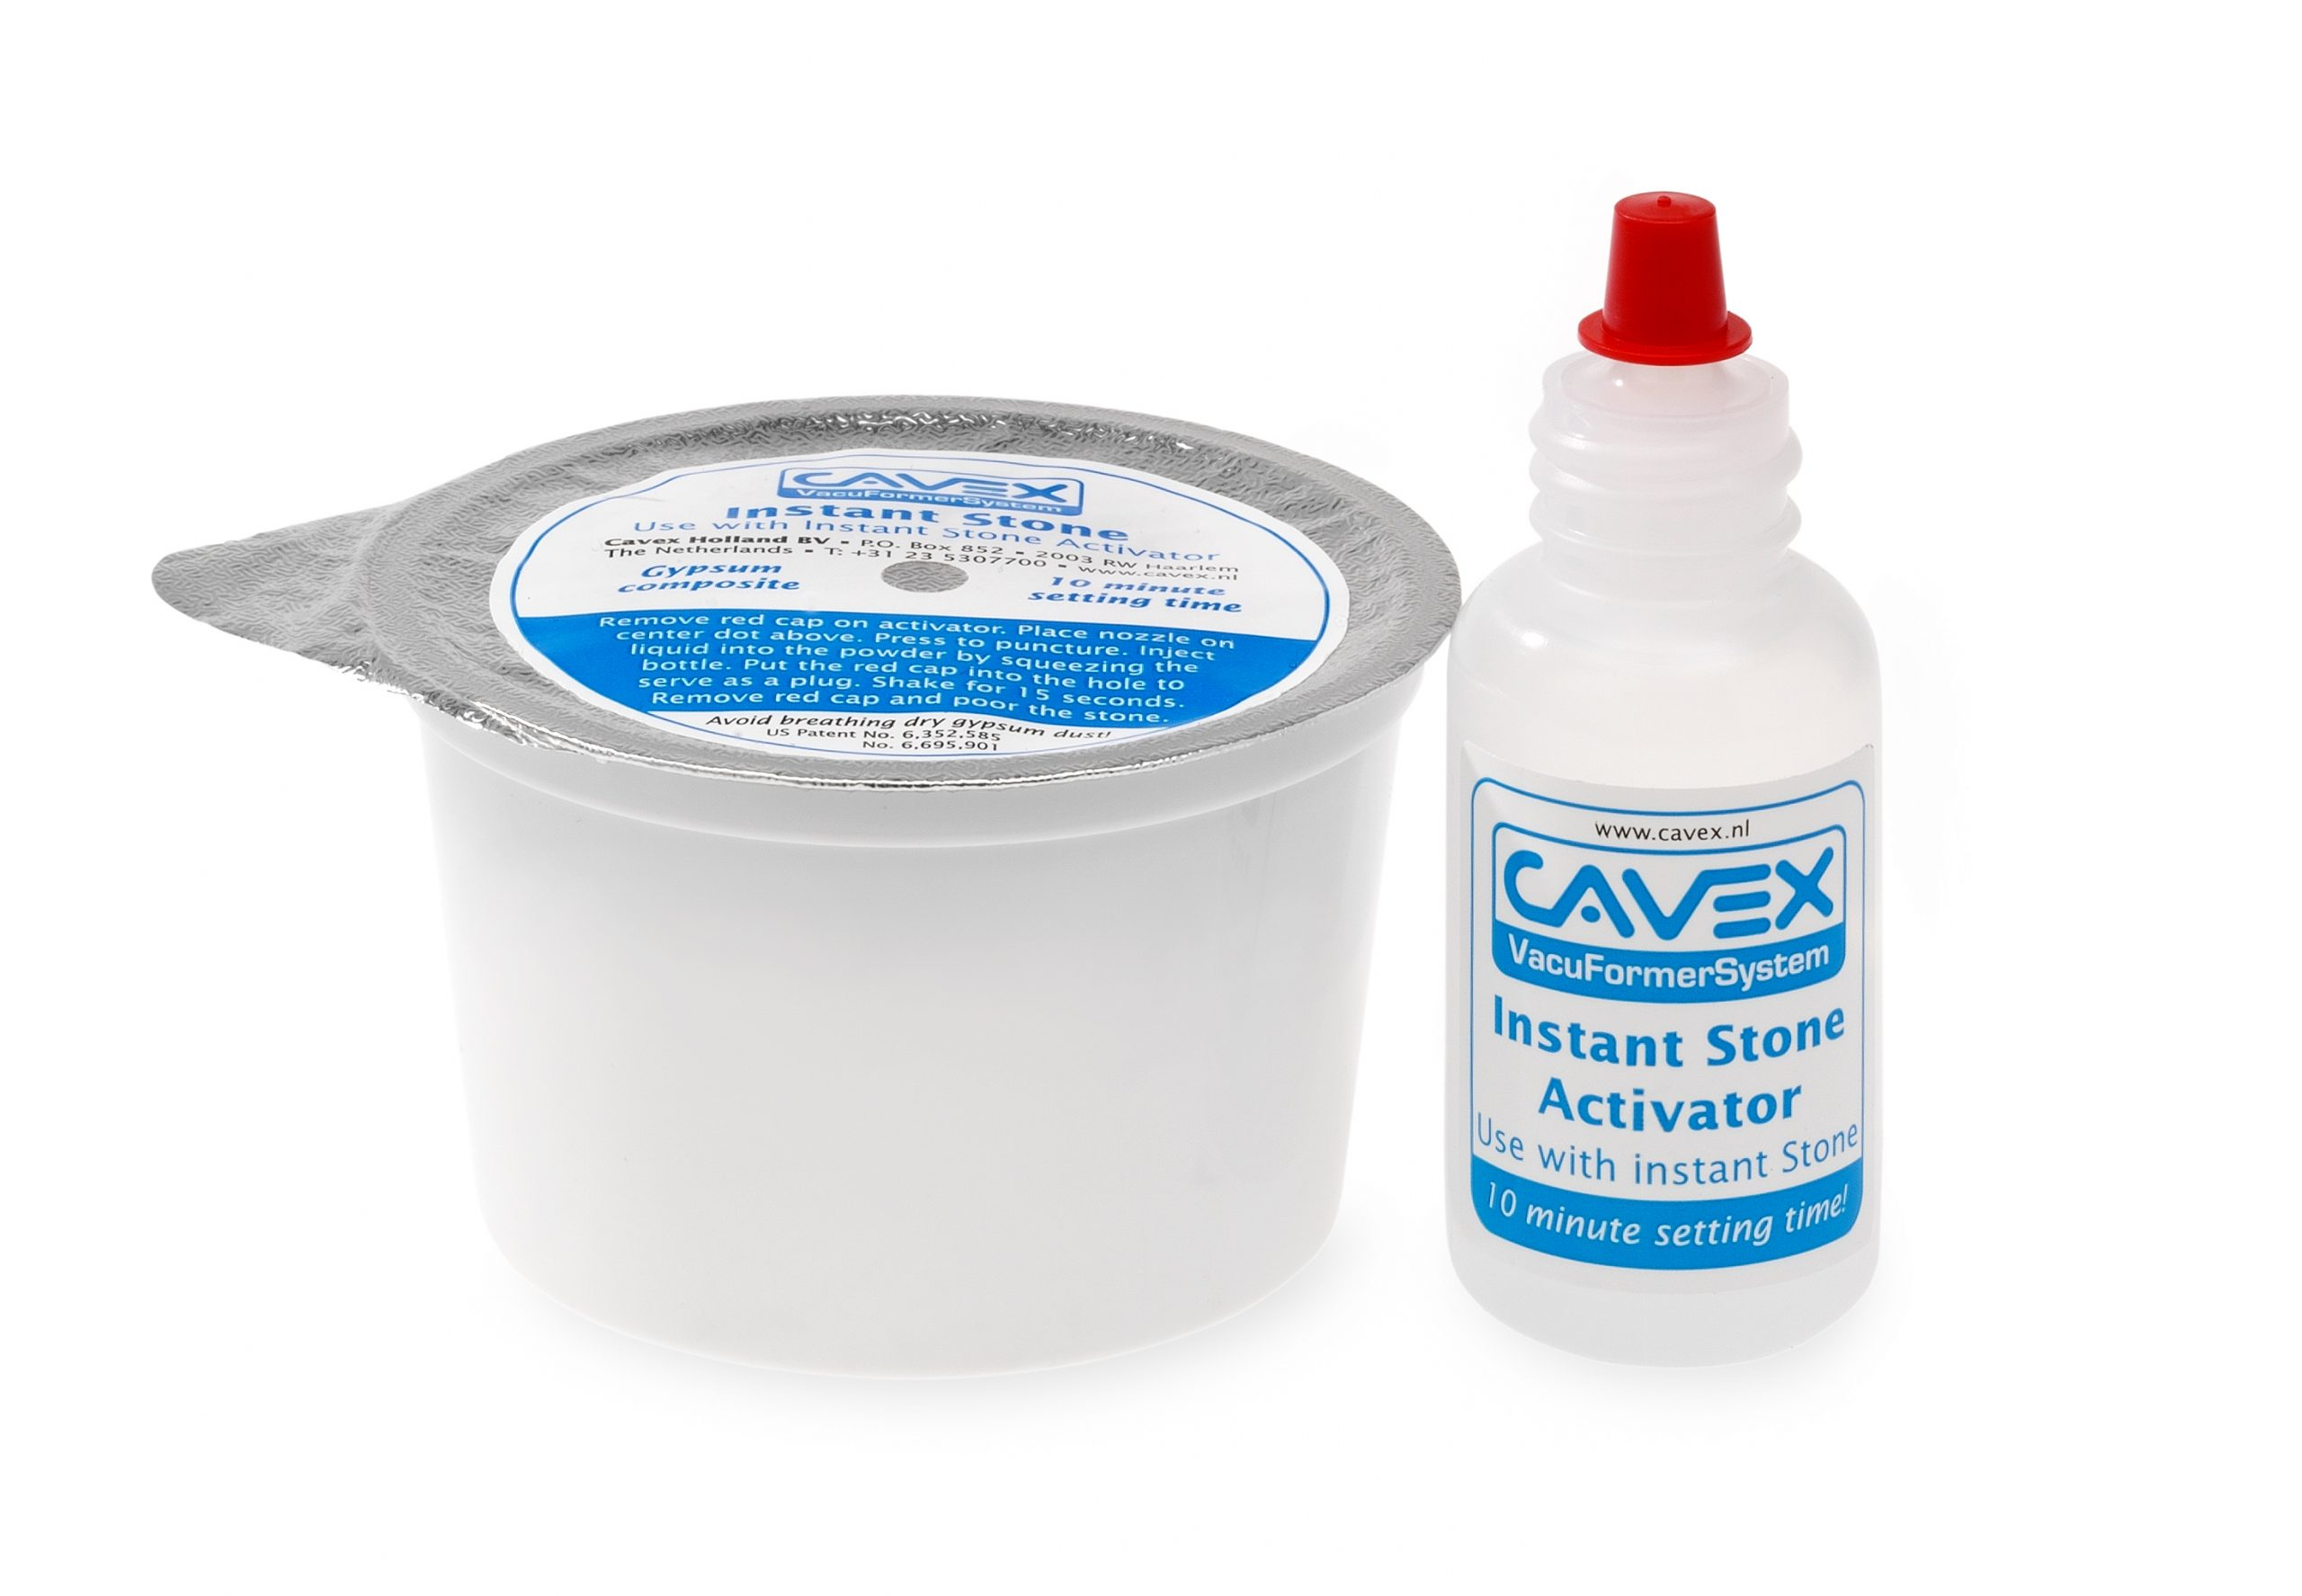 Cavex-VacuFormer-System-Instant-Stone